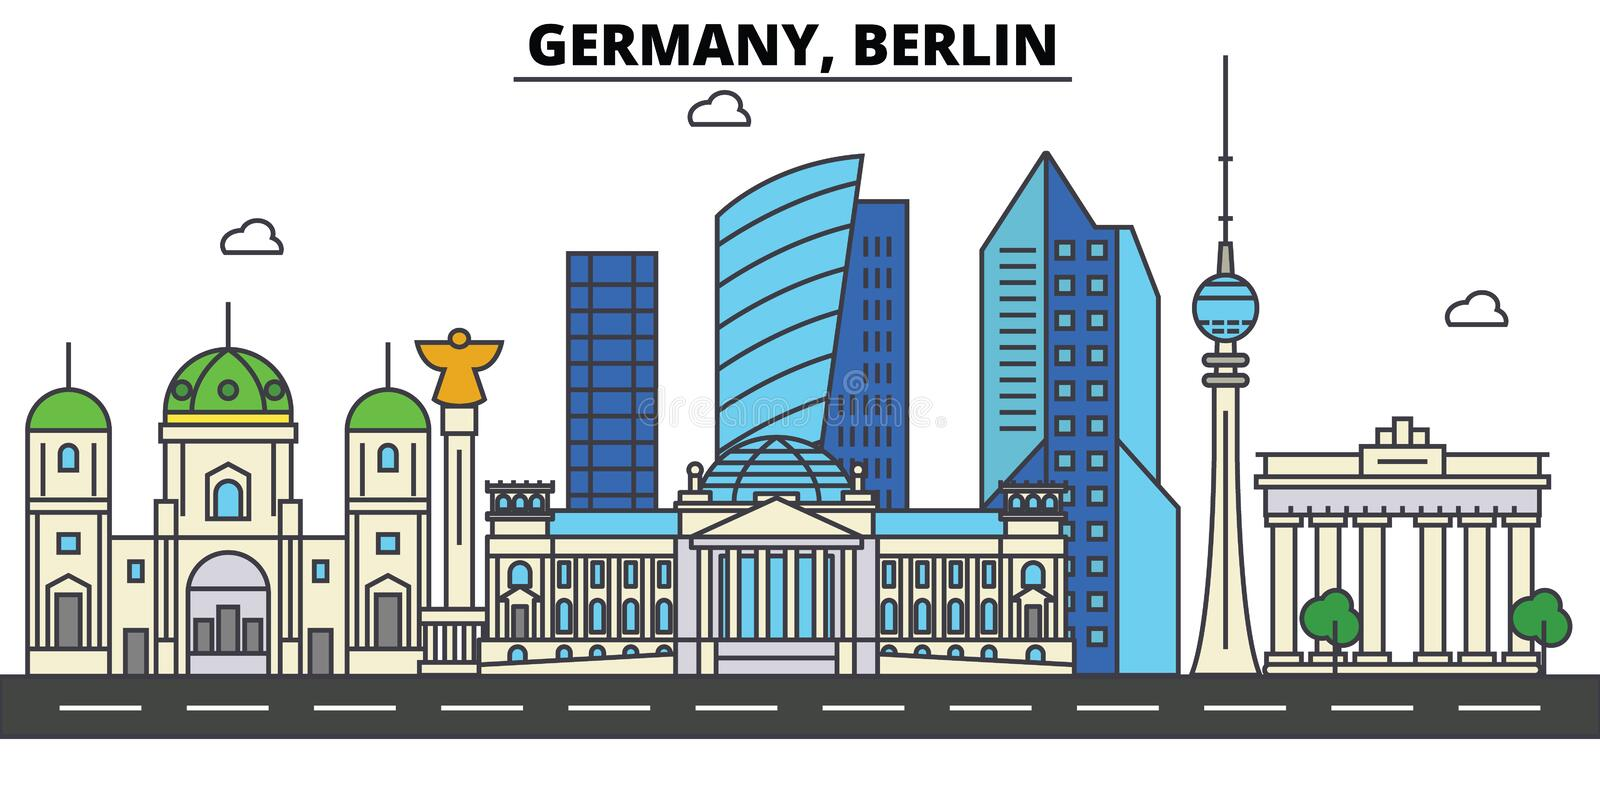 Germany, Berlin. City skyline architecture . Editable vector illustration